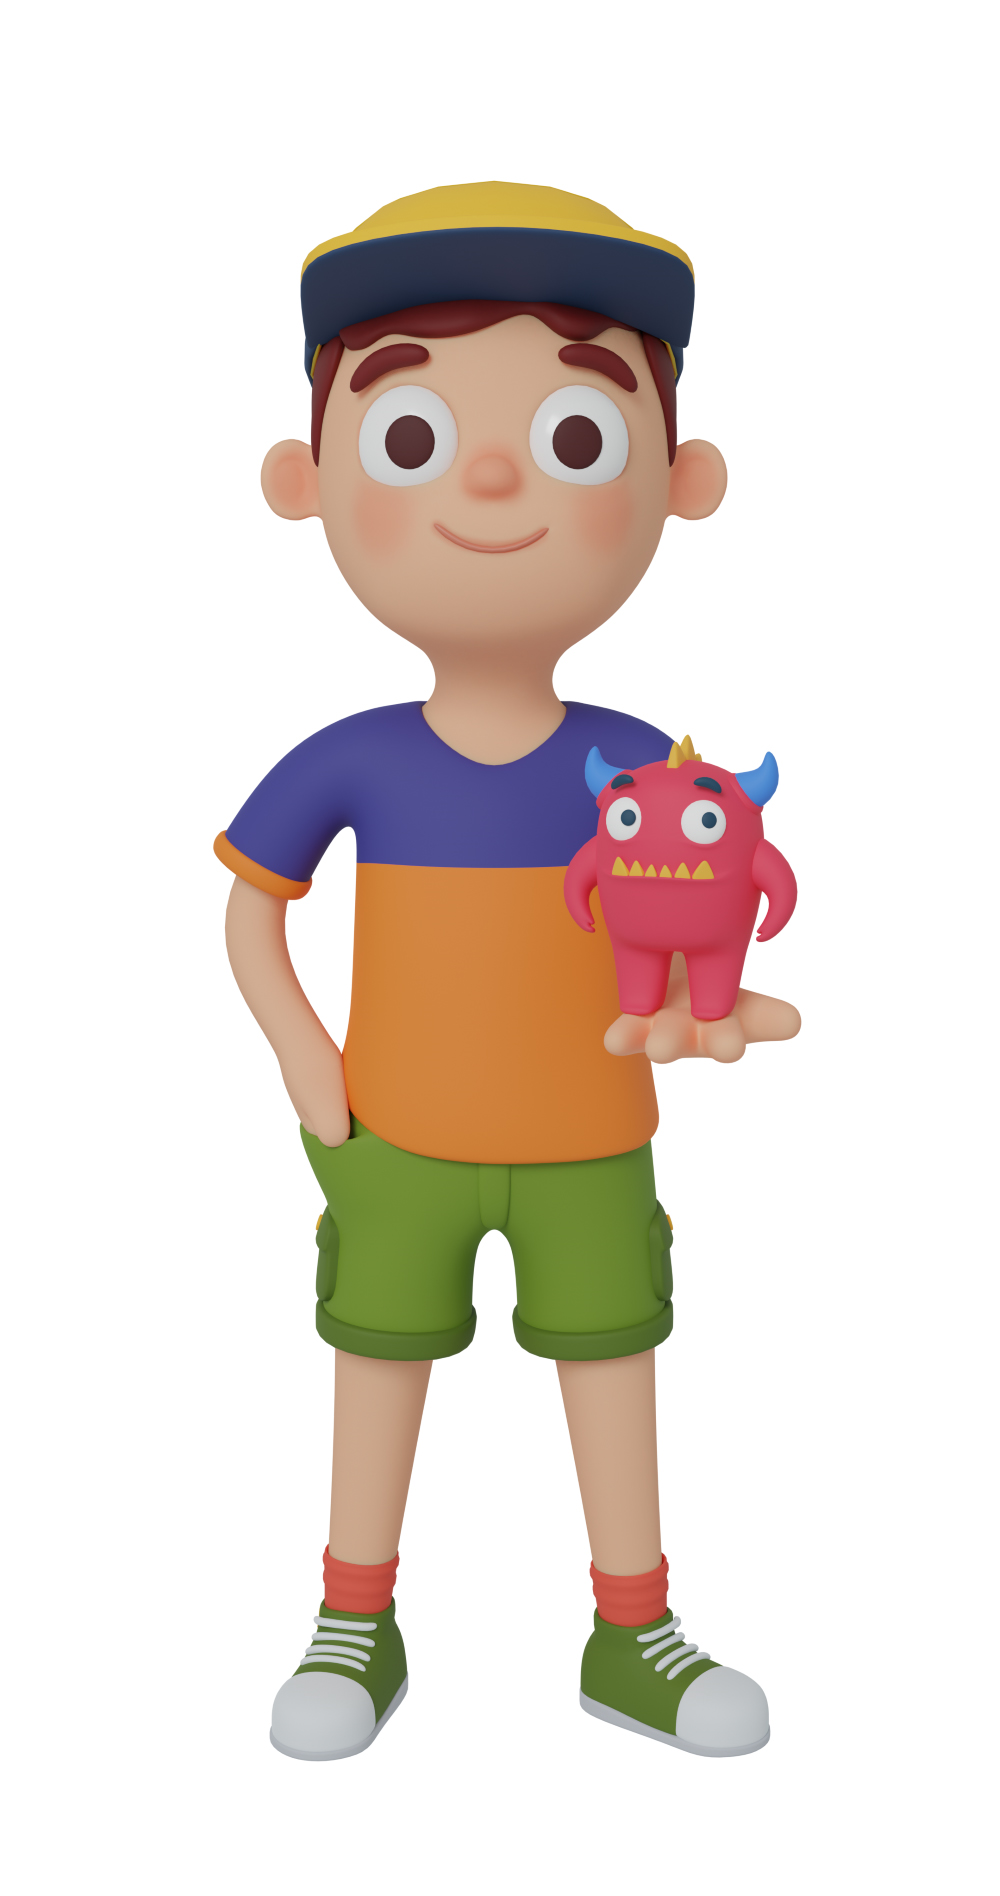 3d character design of a boy standing up